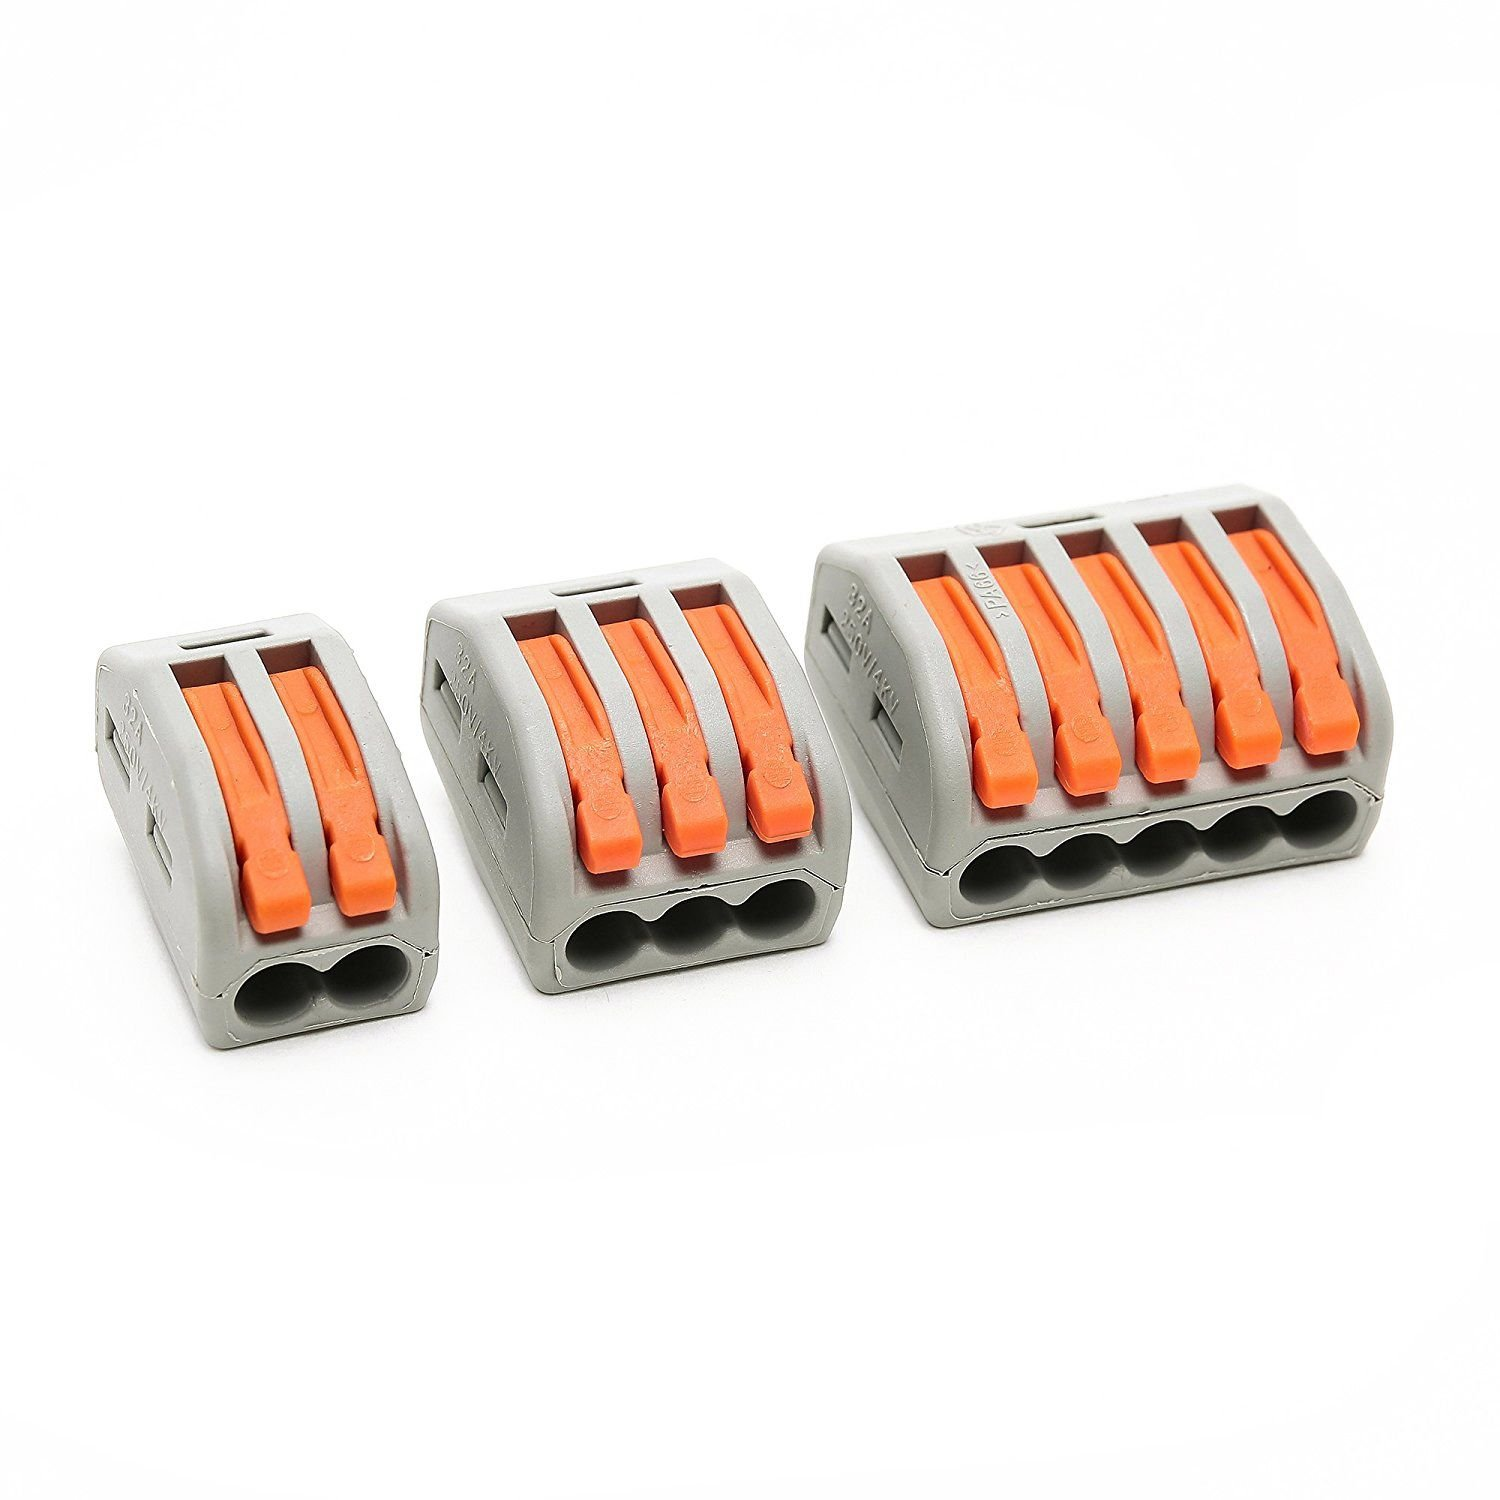 SODIAL(R) 30PCS Lever-Nut Assortment Pack Conductor Compact Splicing Wire Connector 400 V 28-12 AWG PCT-21X/222-41X